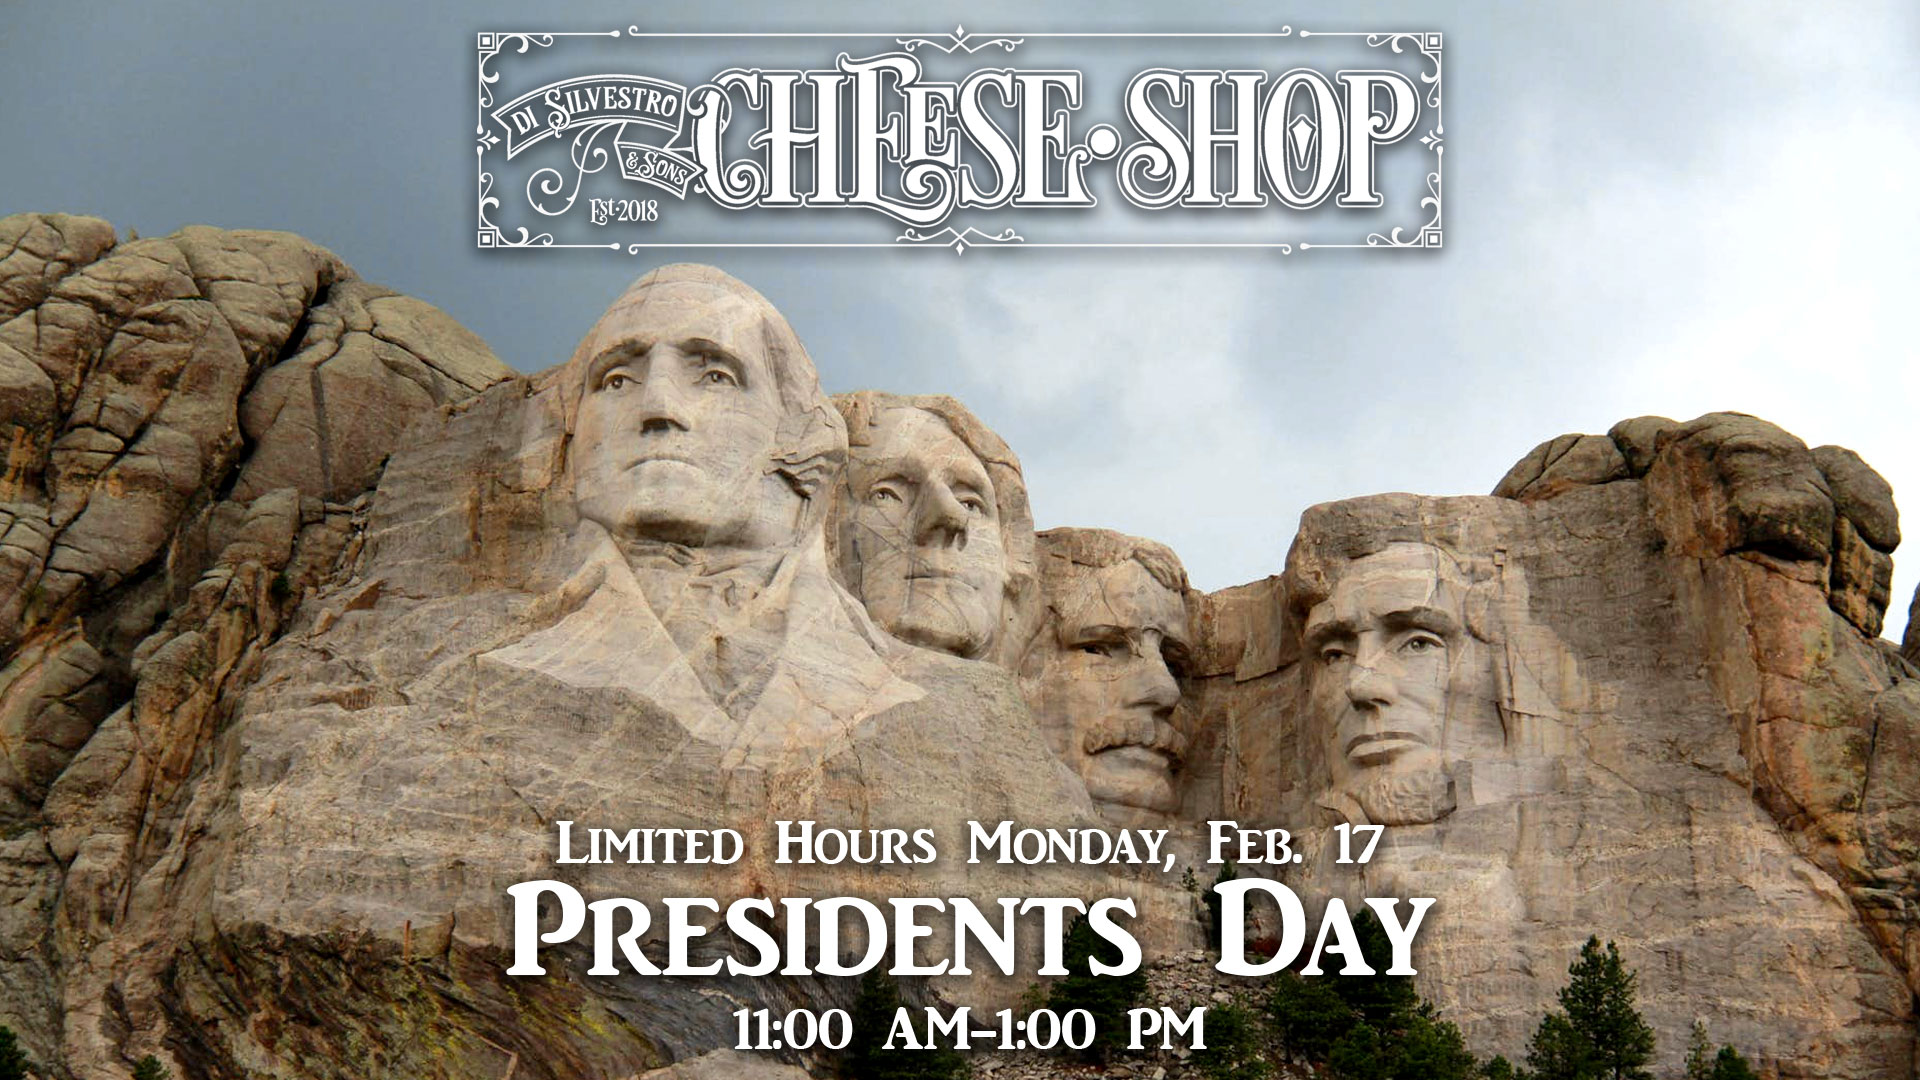 Mount Rushmore - Limited store hours 2/17 for Presidents Day!